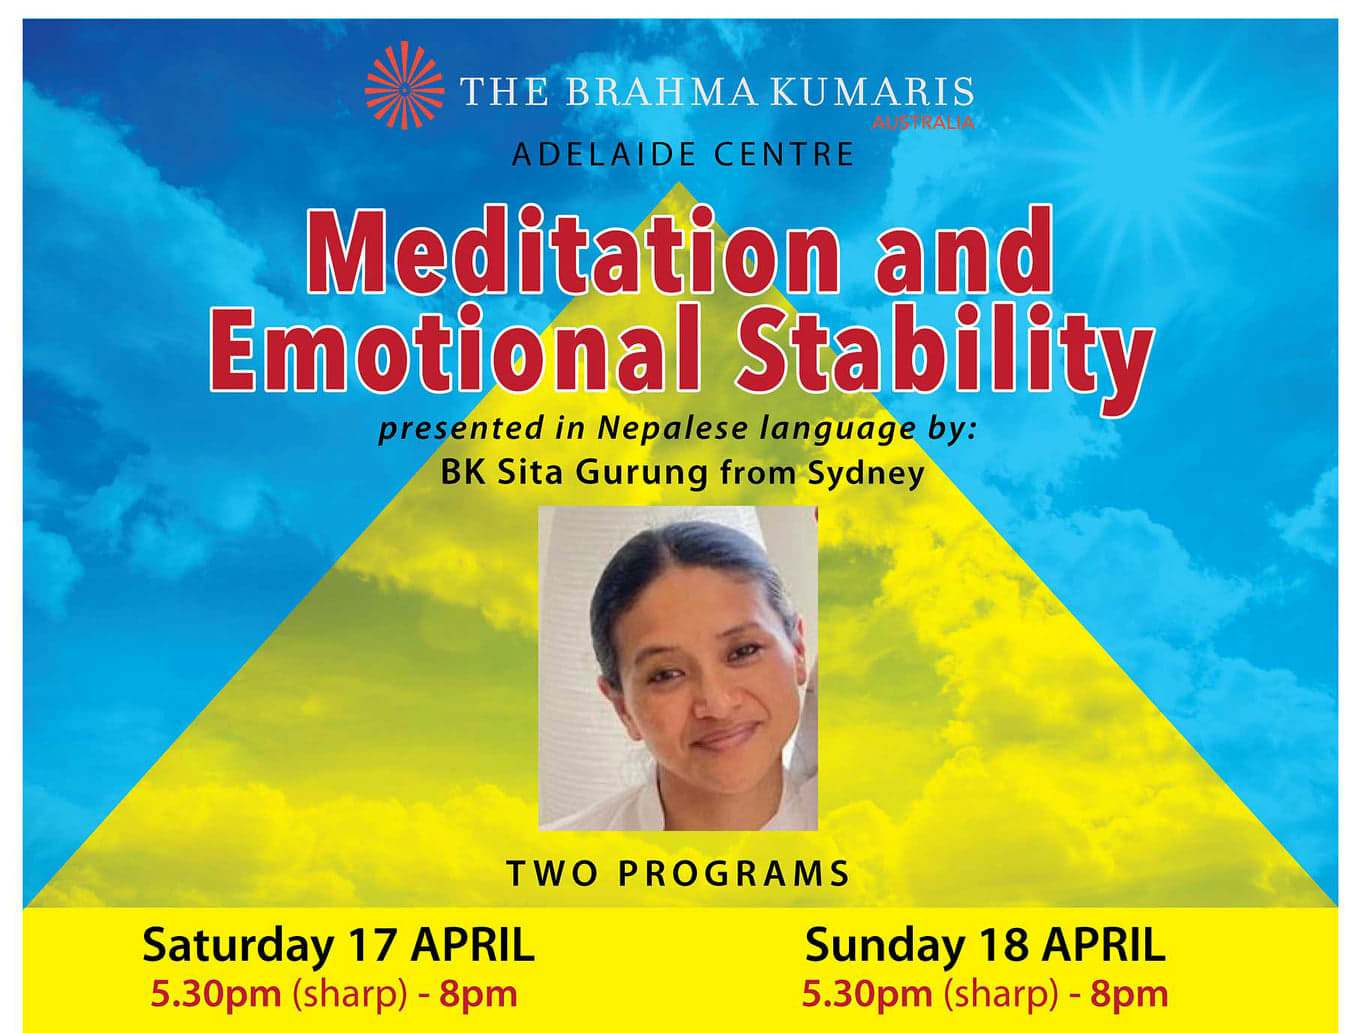 Meditation and Emotional Stability